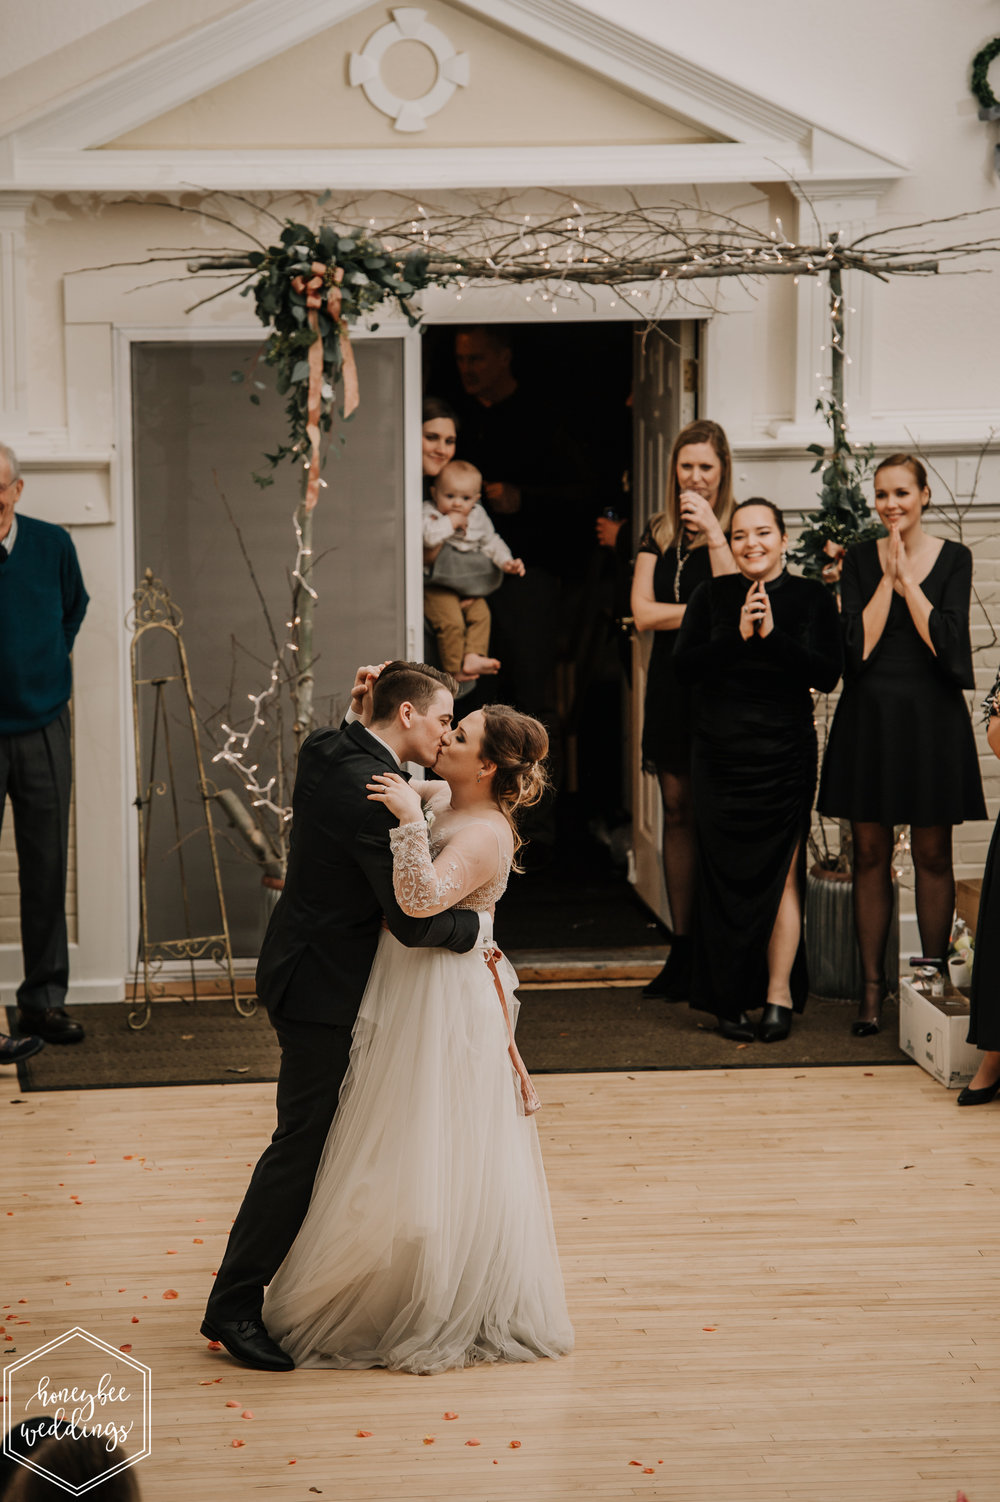 0305Montana Wedding Photographer_Montana winter wedding_Wedding at Fort Missoula_Meri & Carter_January 19, 2019-702.jpg